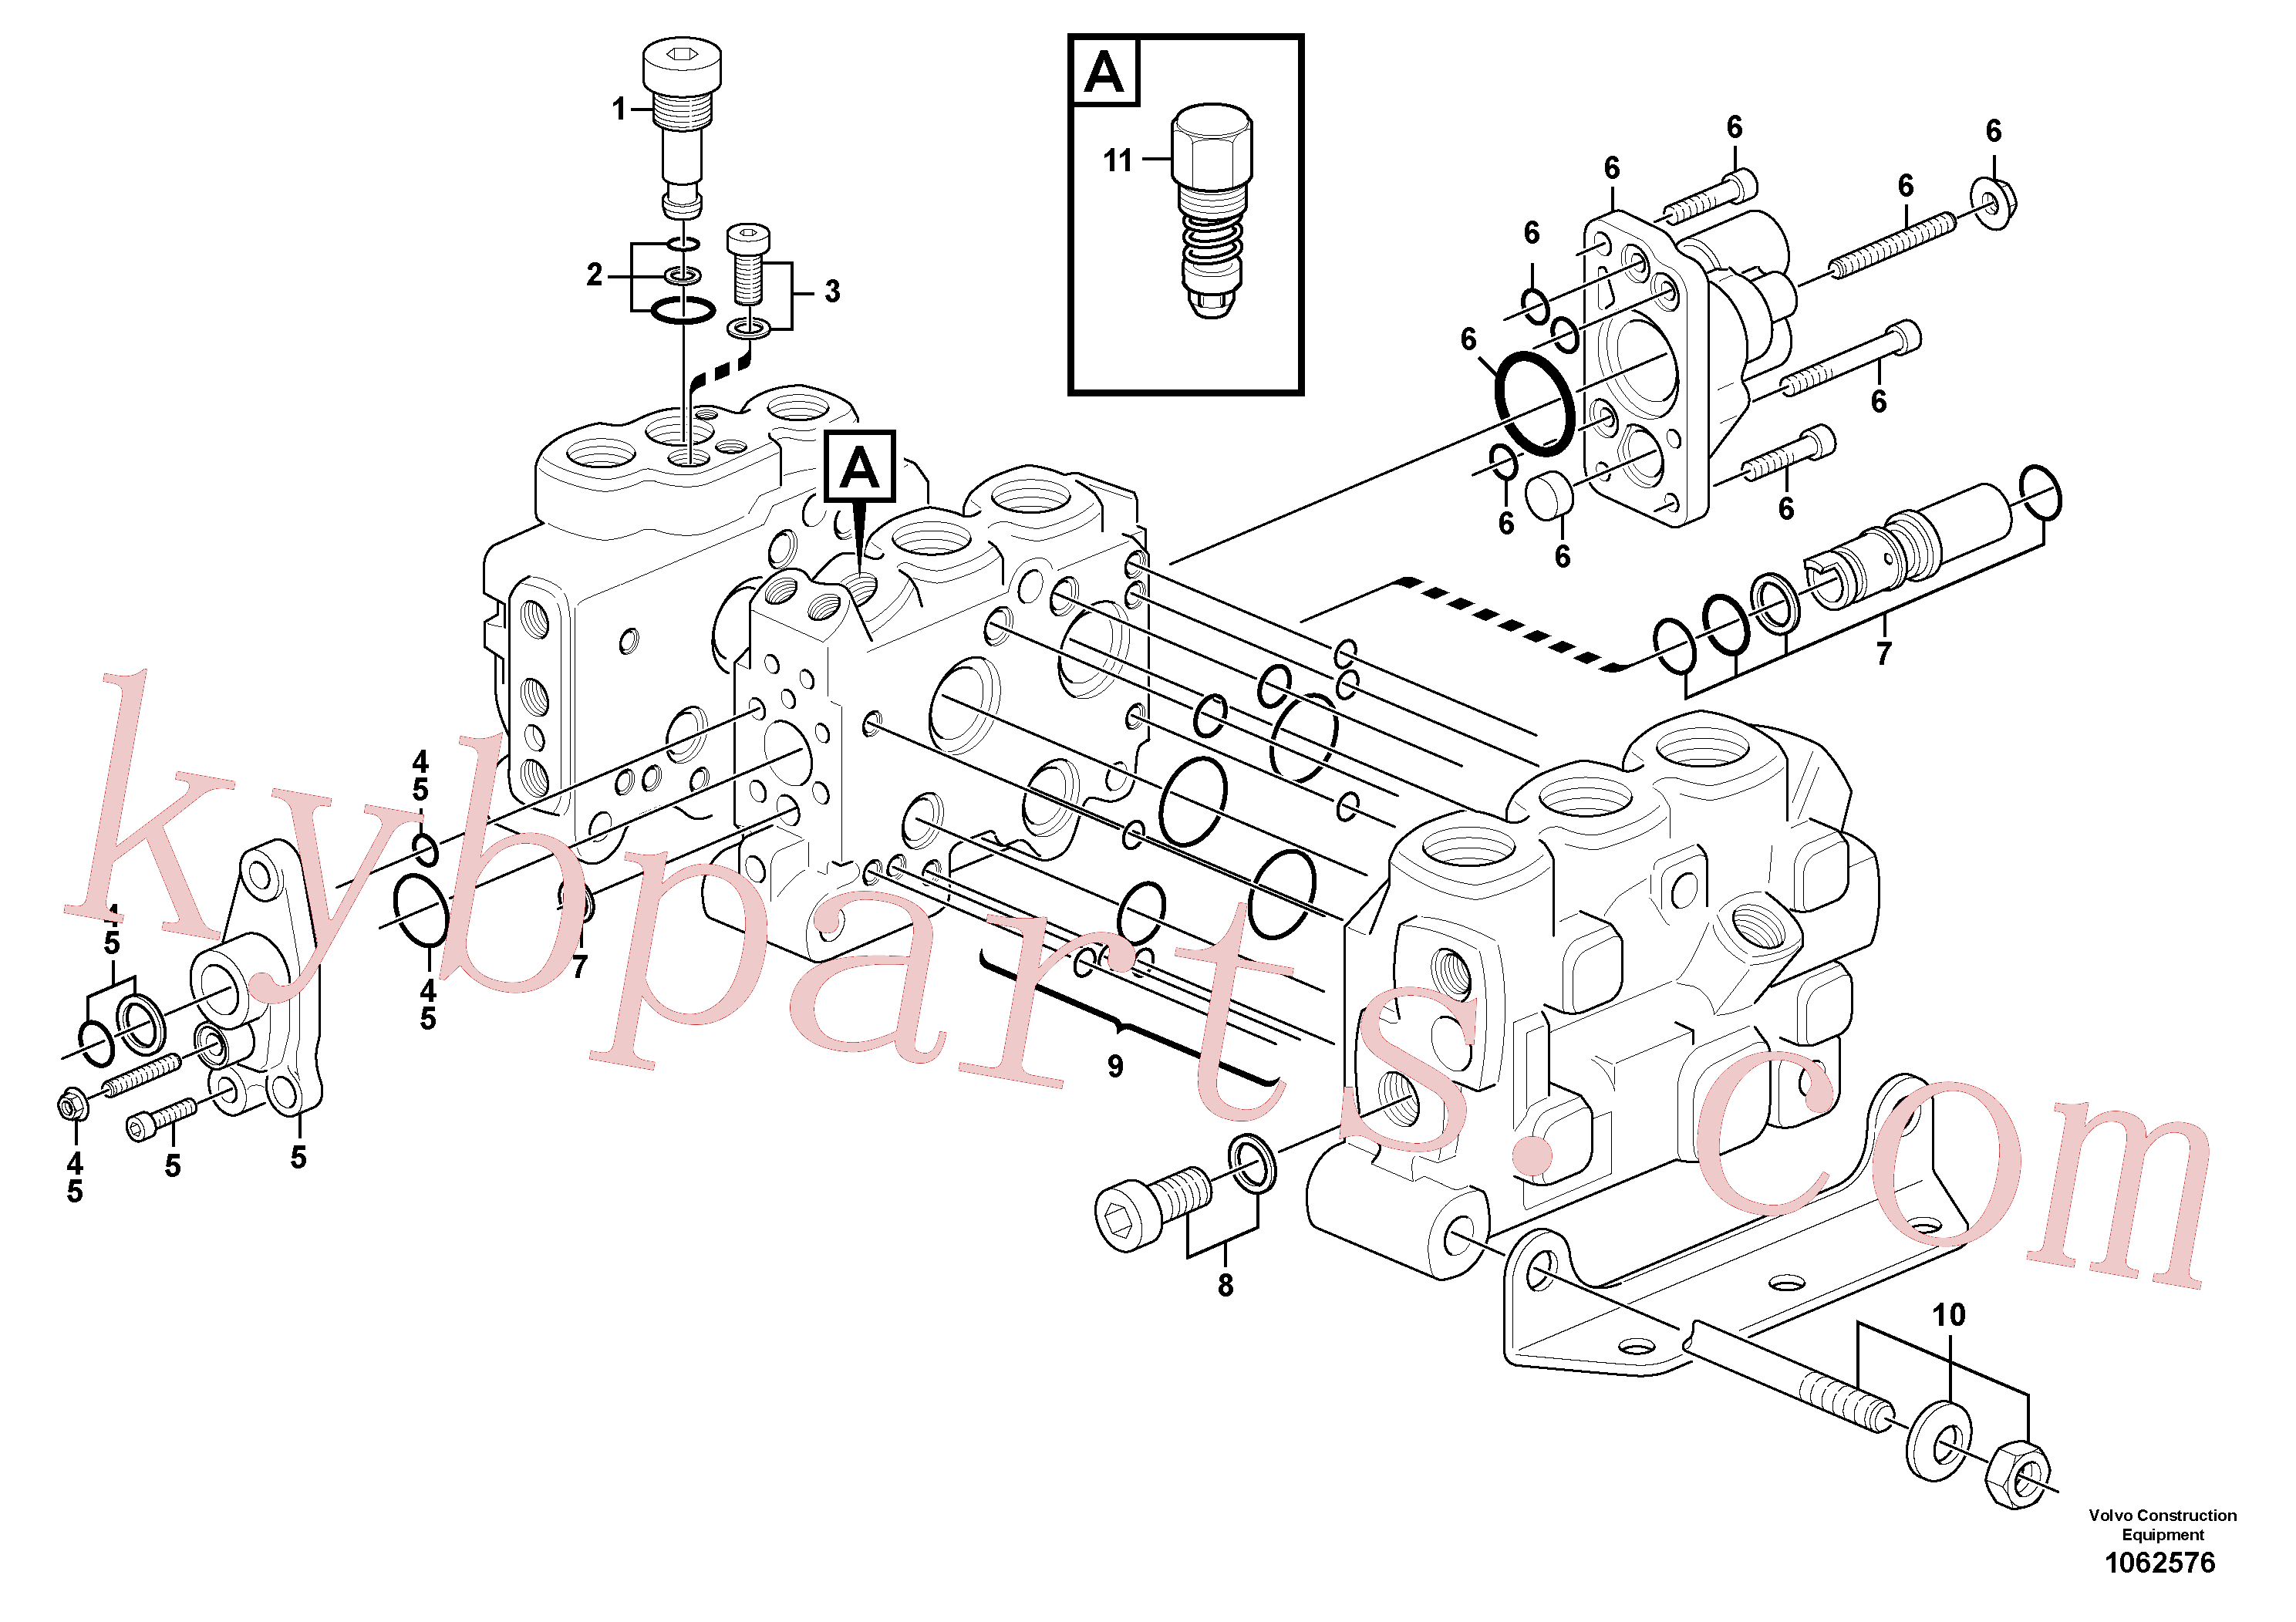 VOE11701439 for Volvo Control valve(1062576 assembly)